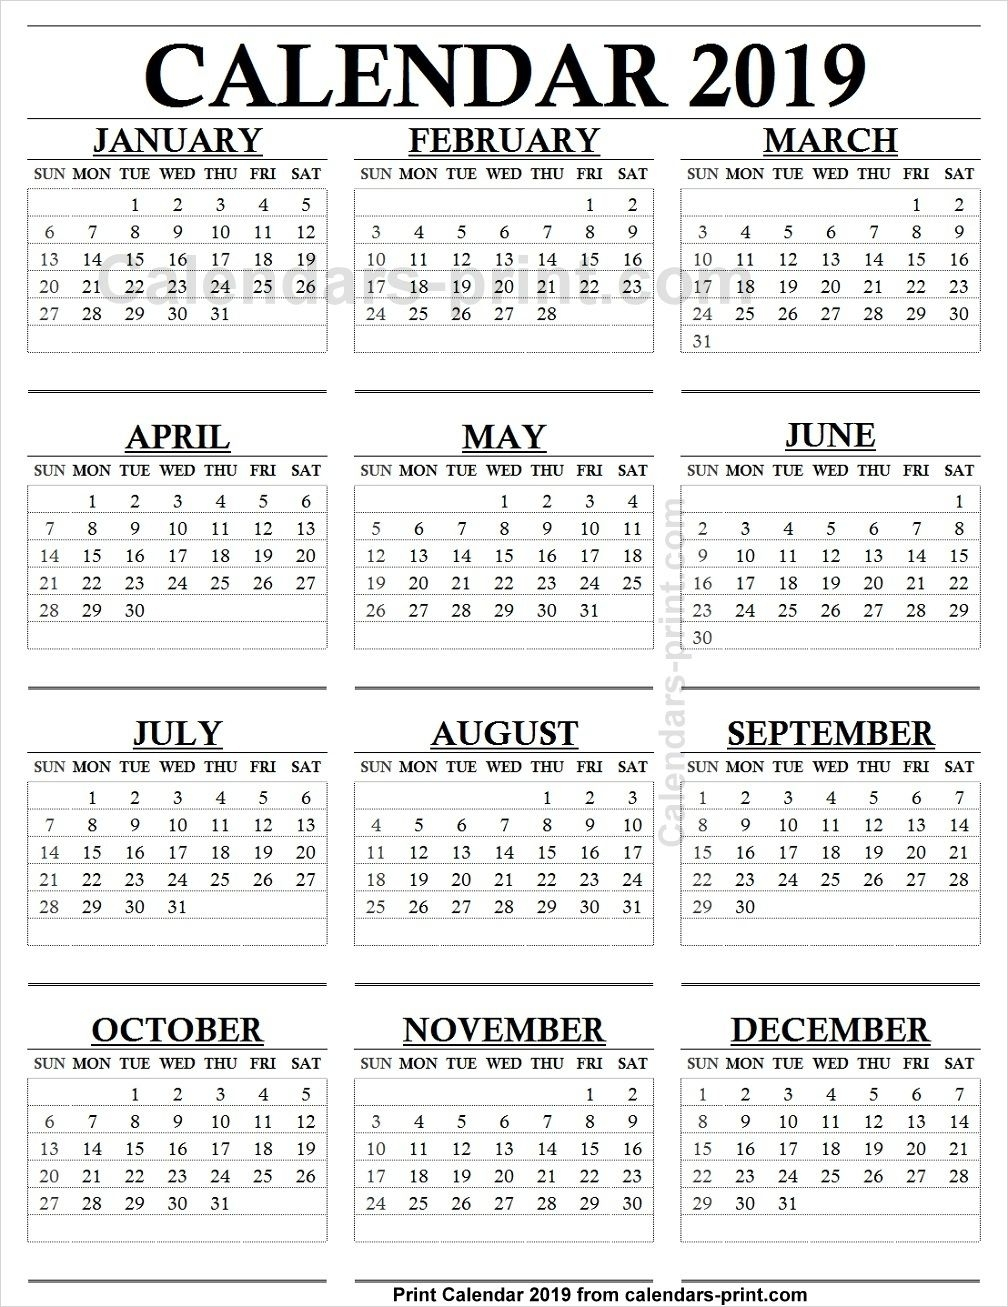 12 Month Calendar 2019 One Page | 2019 Yearly Calendar | 12 Month pertaining to 12 Month Calendar Print Out